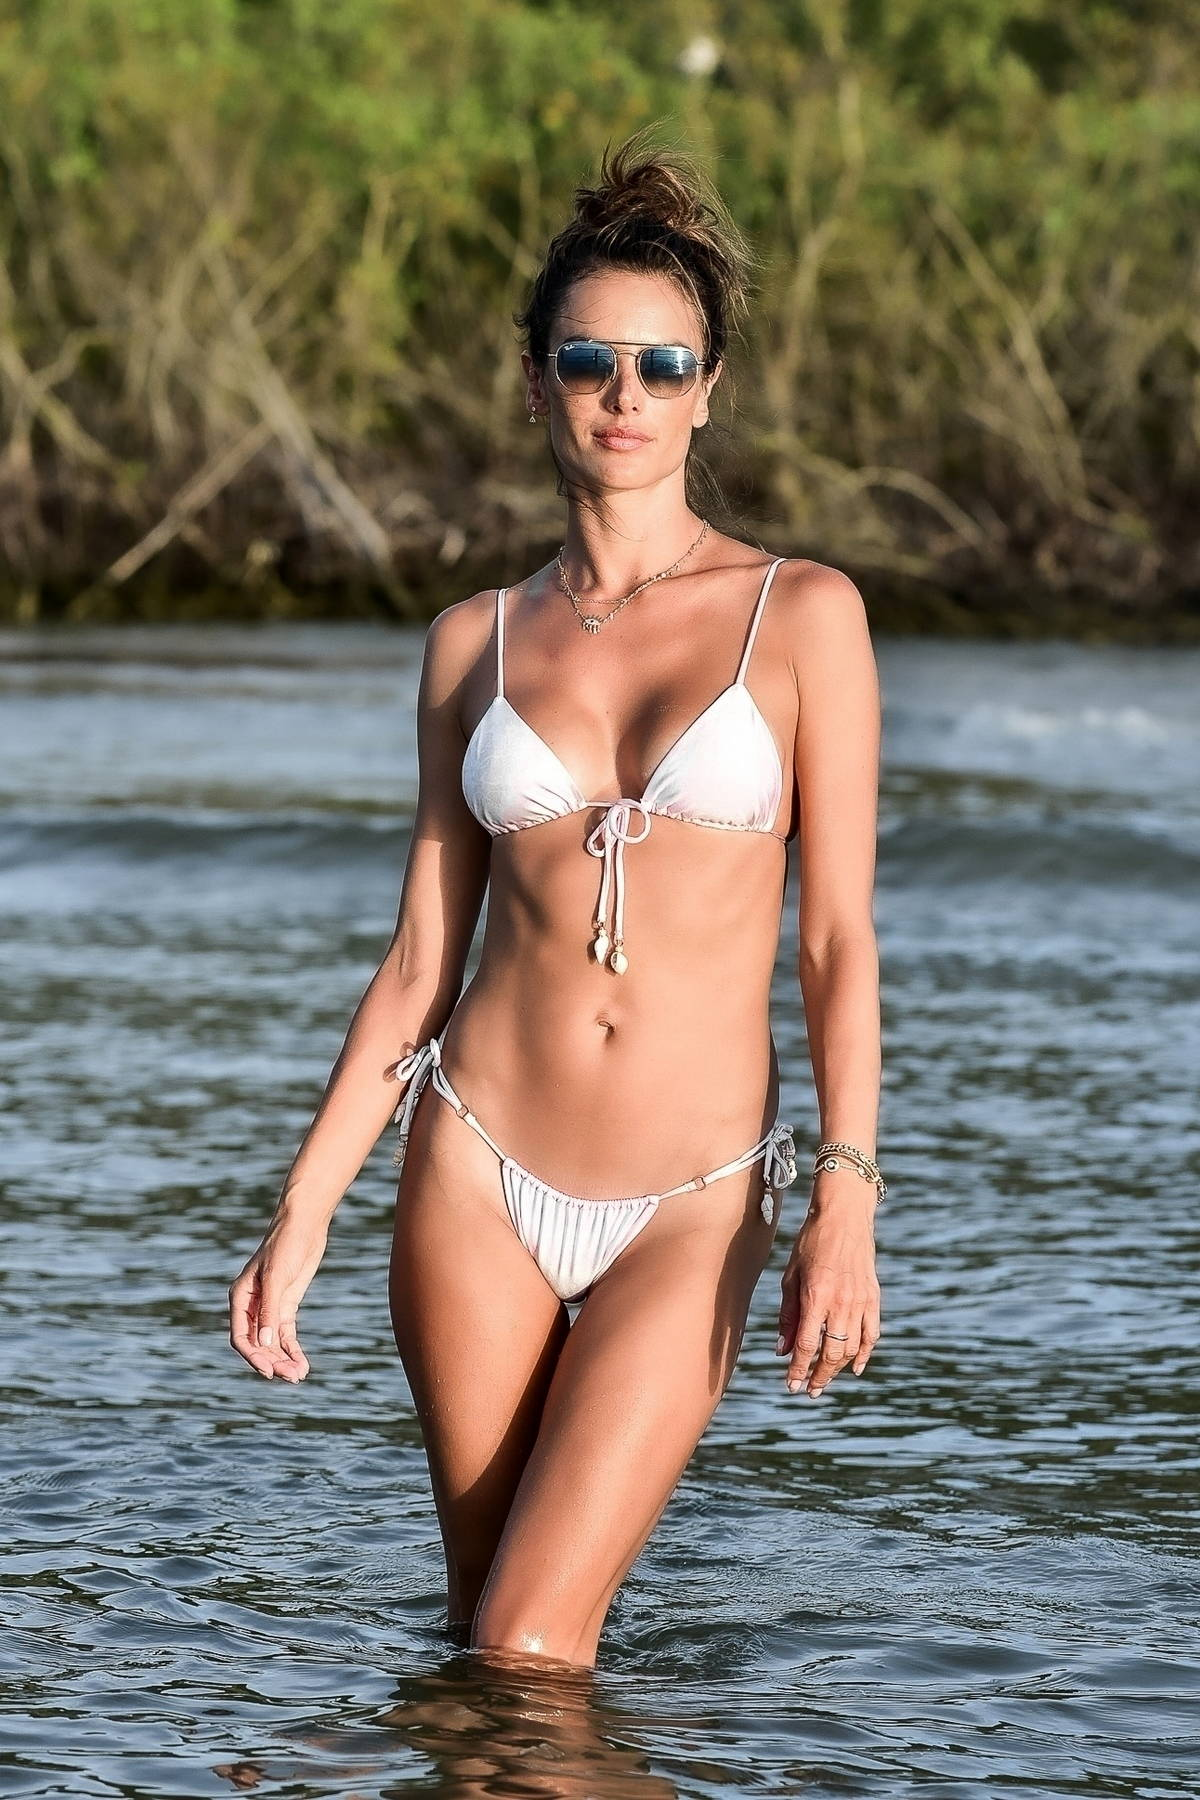 Alessandra Ambrosio looks flawless while posing in a soft pink bikini at the beach in Florianopolis, Brazil